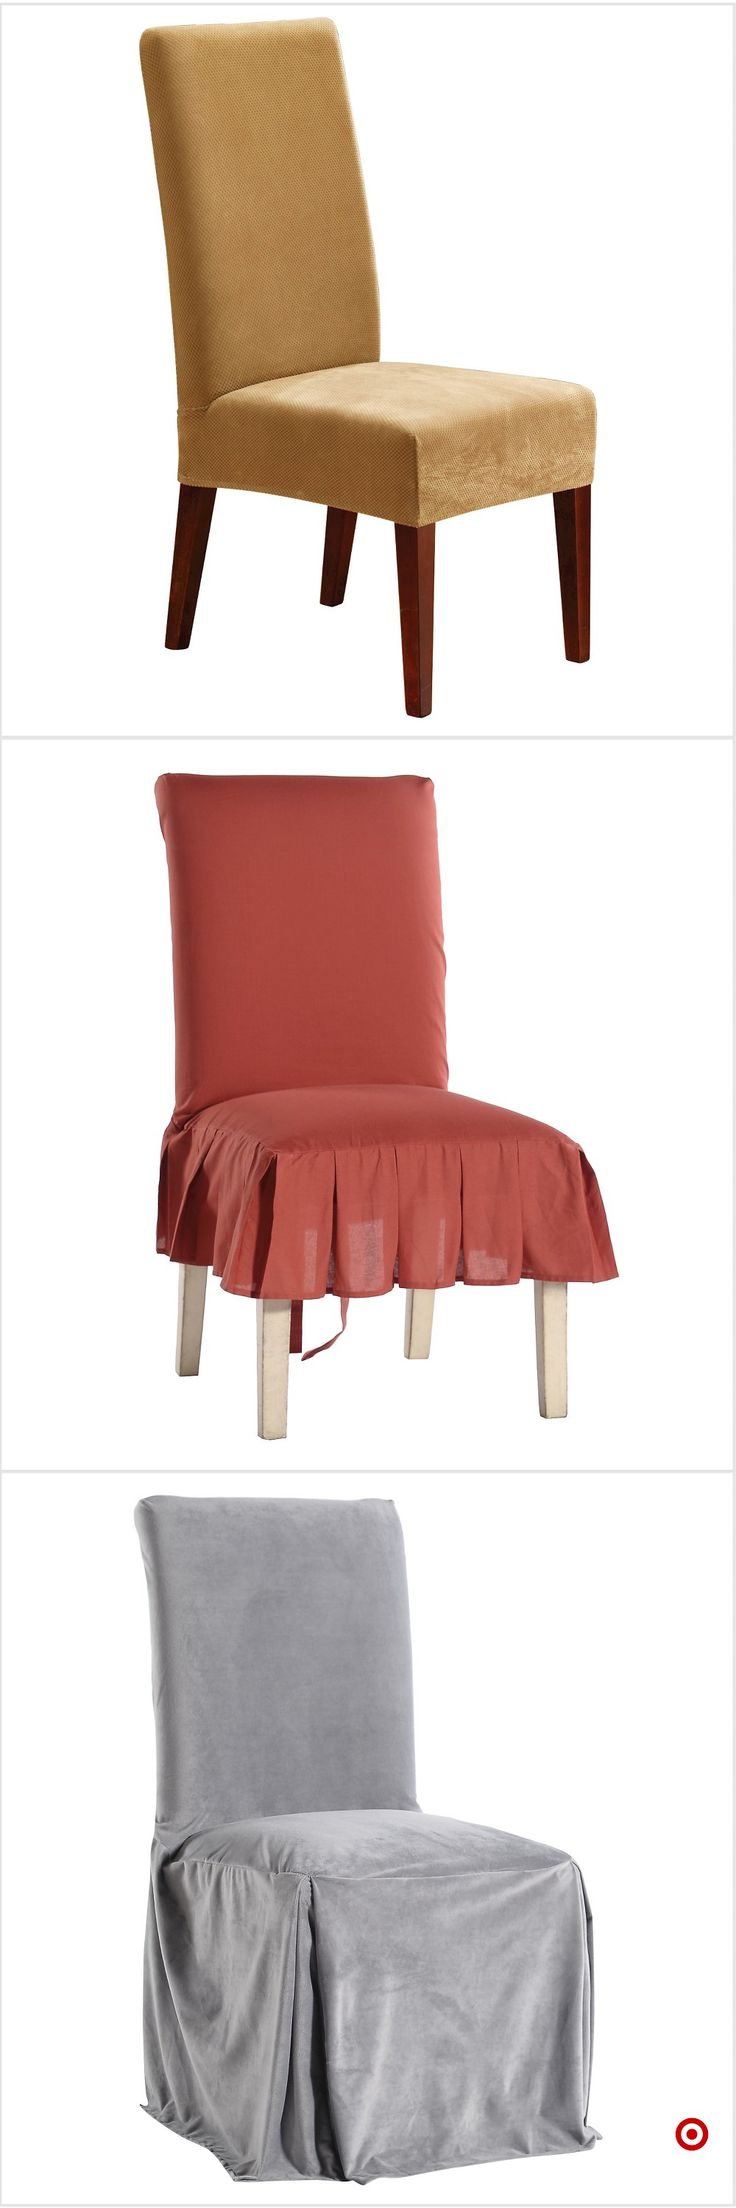 Shop Target for dining chair slipcover you will love at great low prices. Free shipping on orders of $35+ or free same-day pick-up in store.